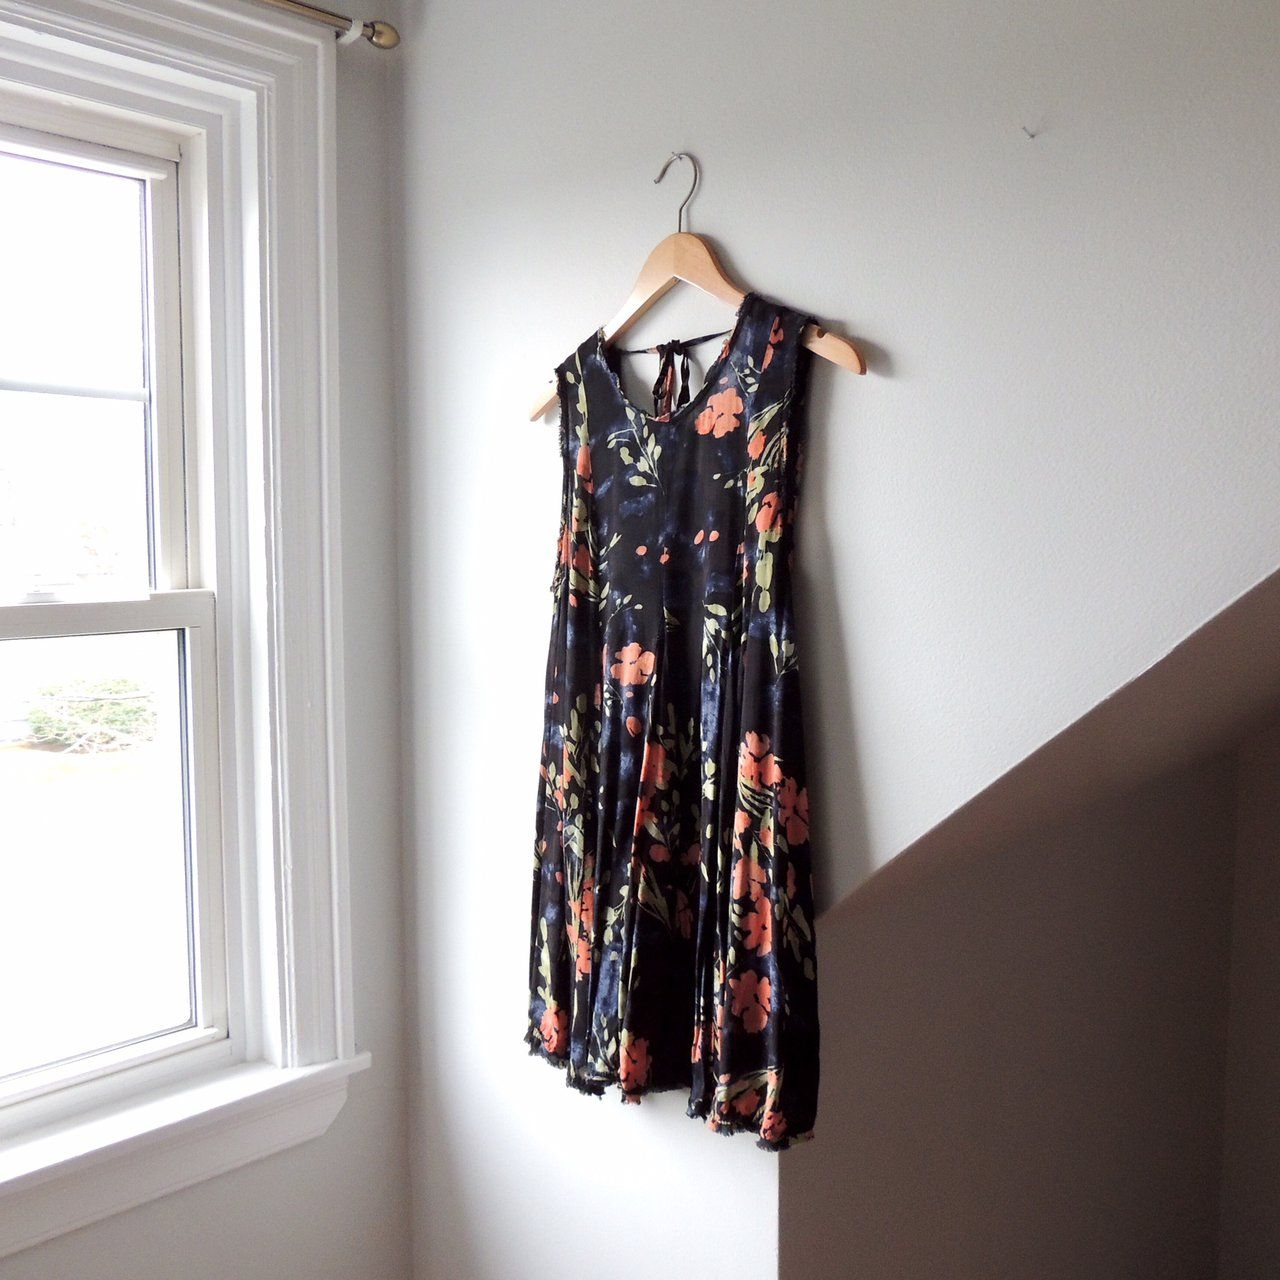 48412266ca1  lisaloveslions on Depop Floral tank dress by Ecote from Urban Outfitters  Size XS (will